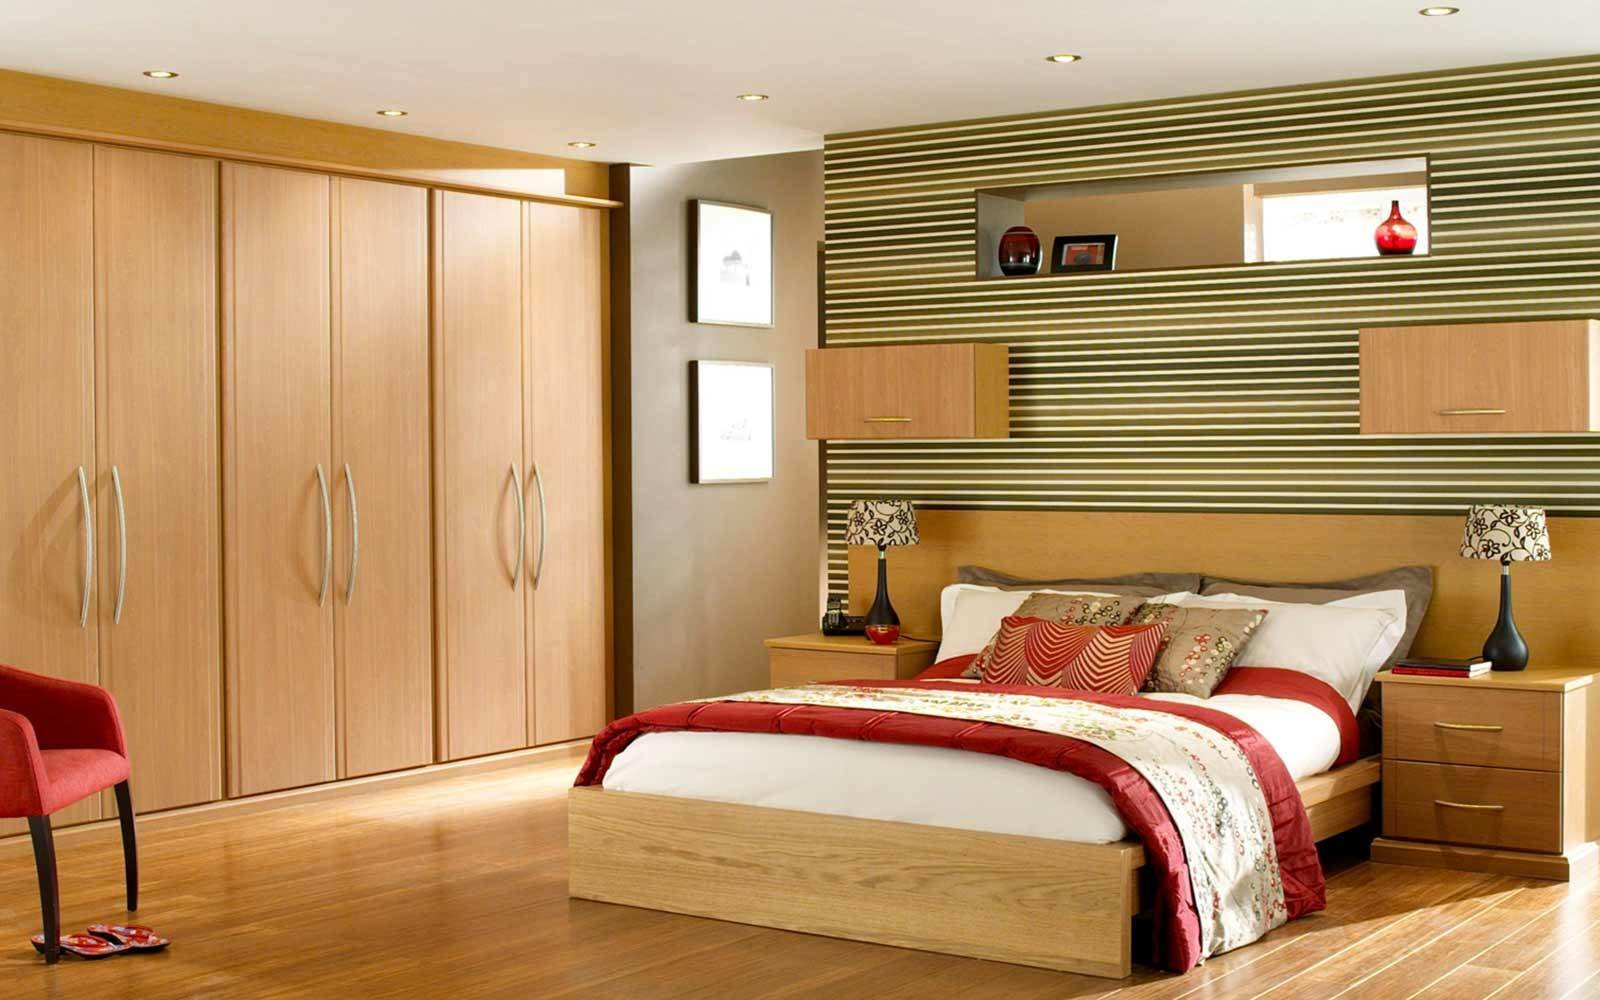 Best 35 Images Of Wardrobe Designs For Bedrooms Youme And Trends With Pictures